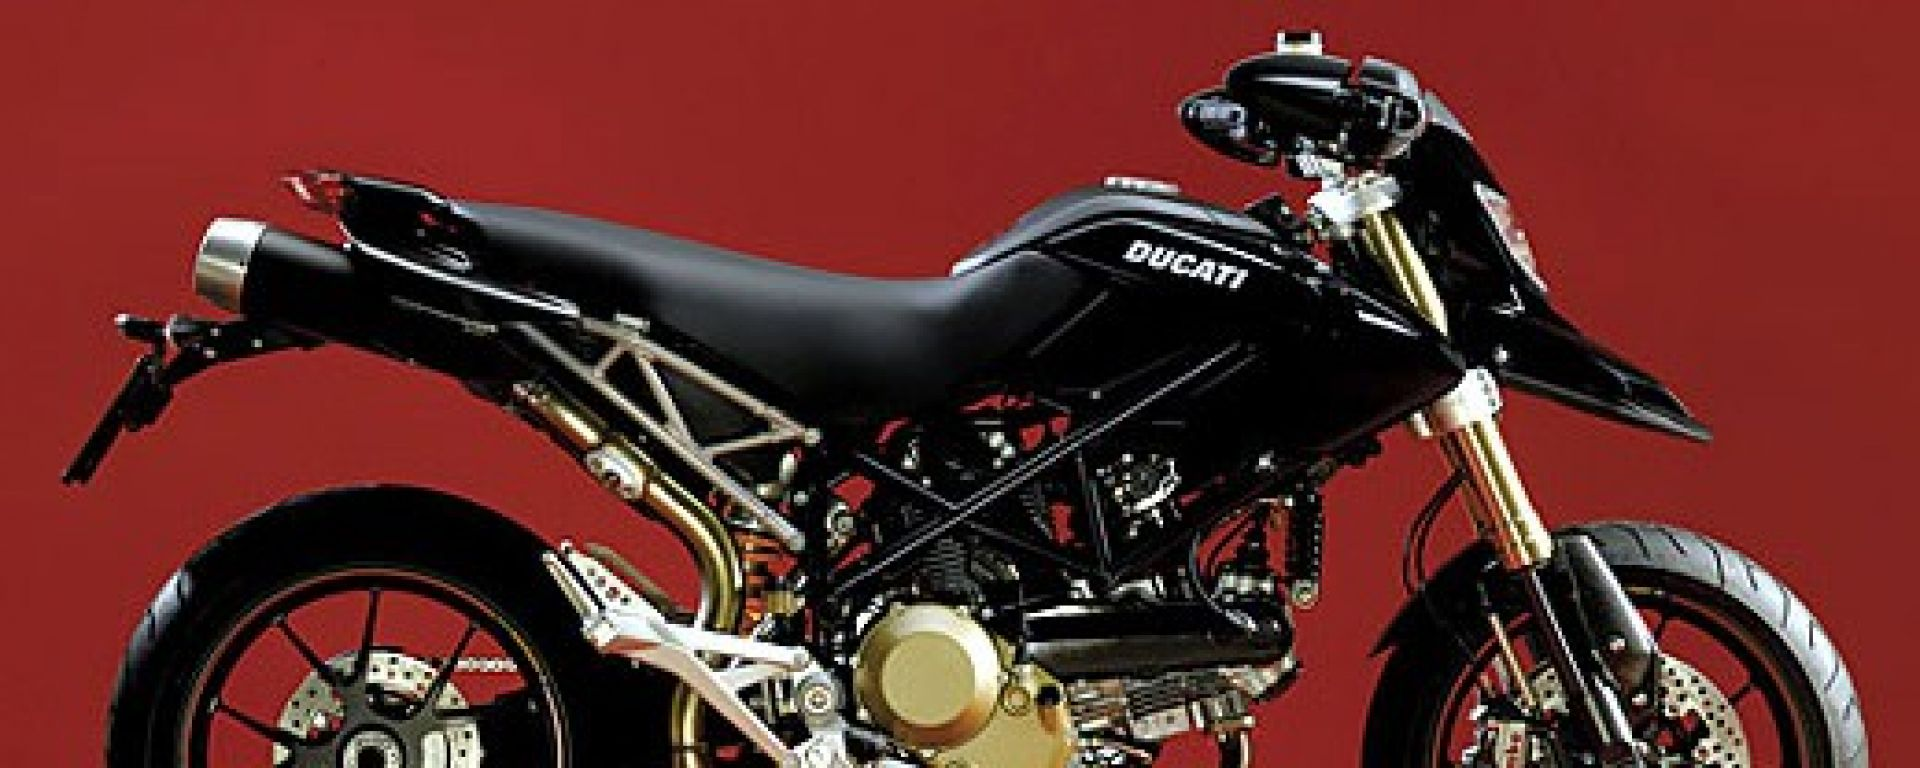 DUCATI: Hypernera e Monster tricolore